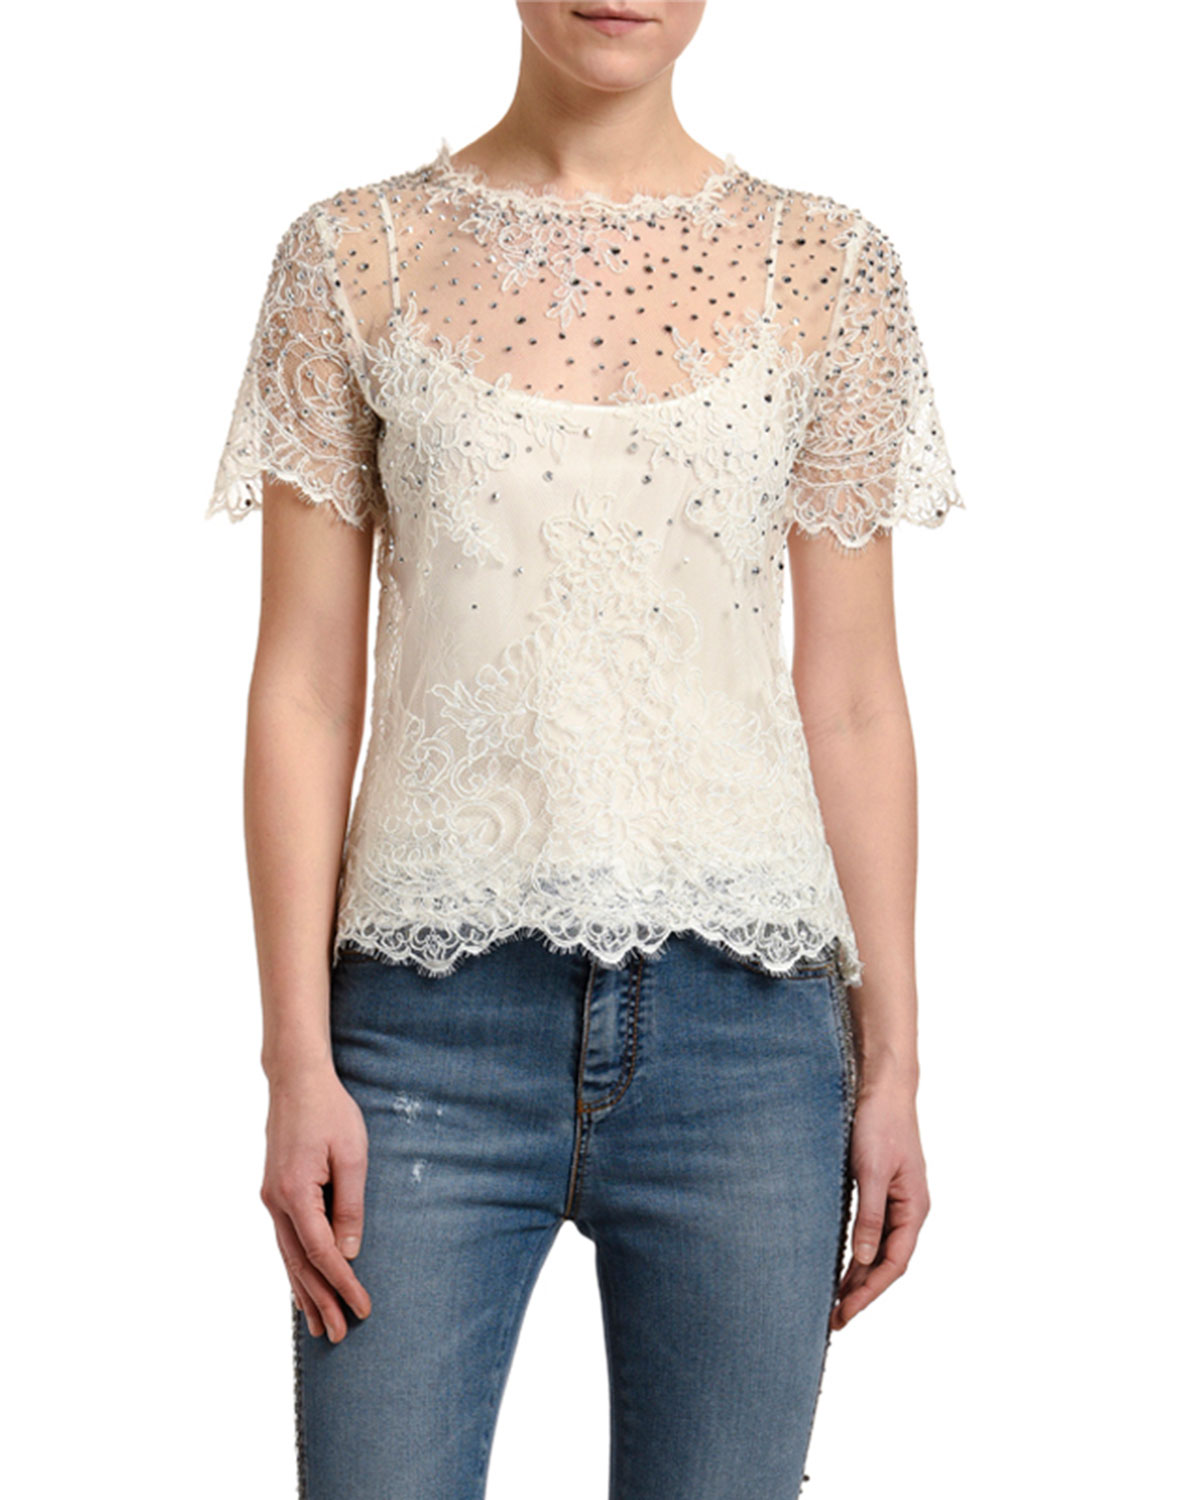 Embellished Lace Illusion Top by Ermanno Scervino